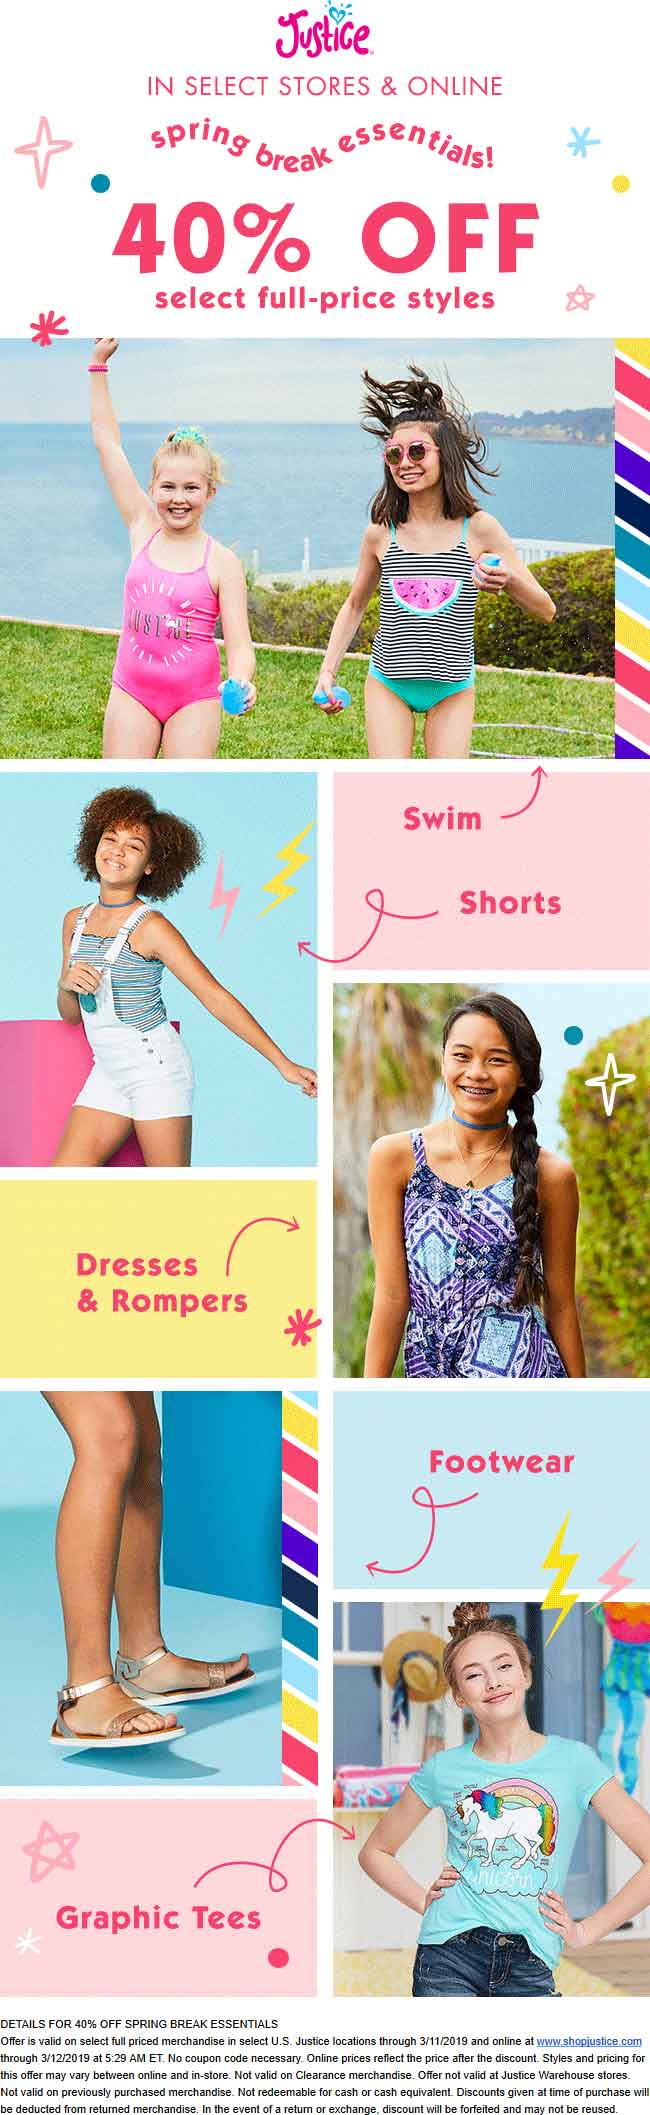 Justice Coupon July 2019 40% off spring break essentials today at Justice, ditto online